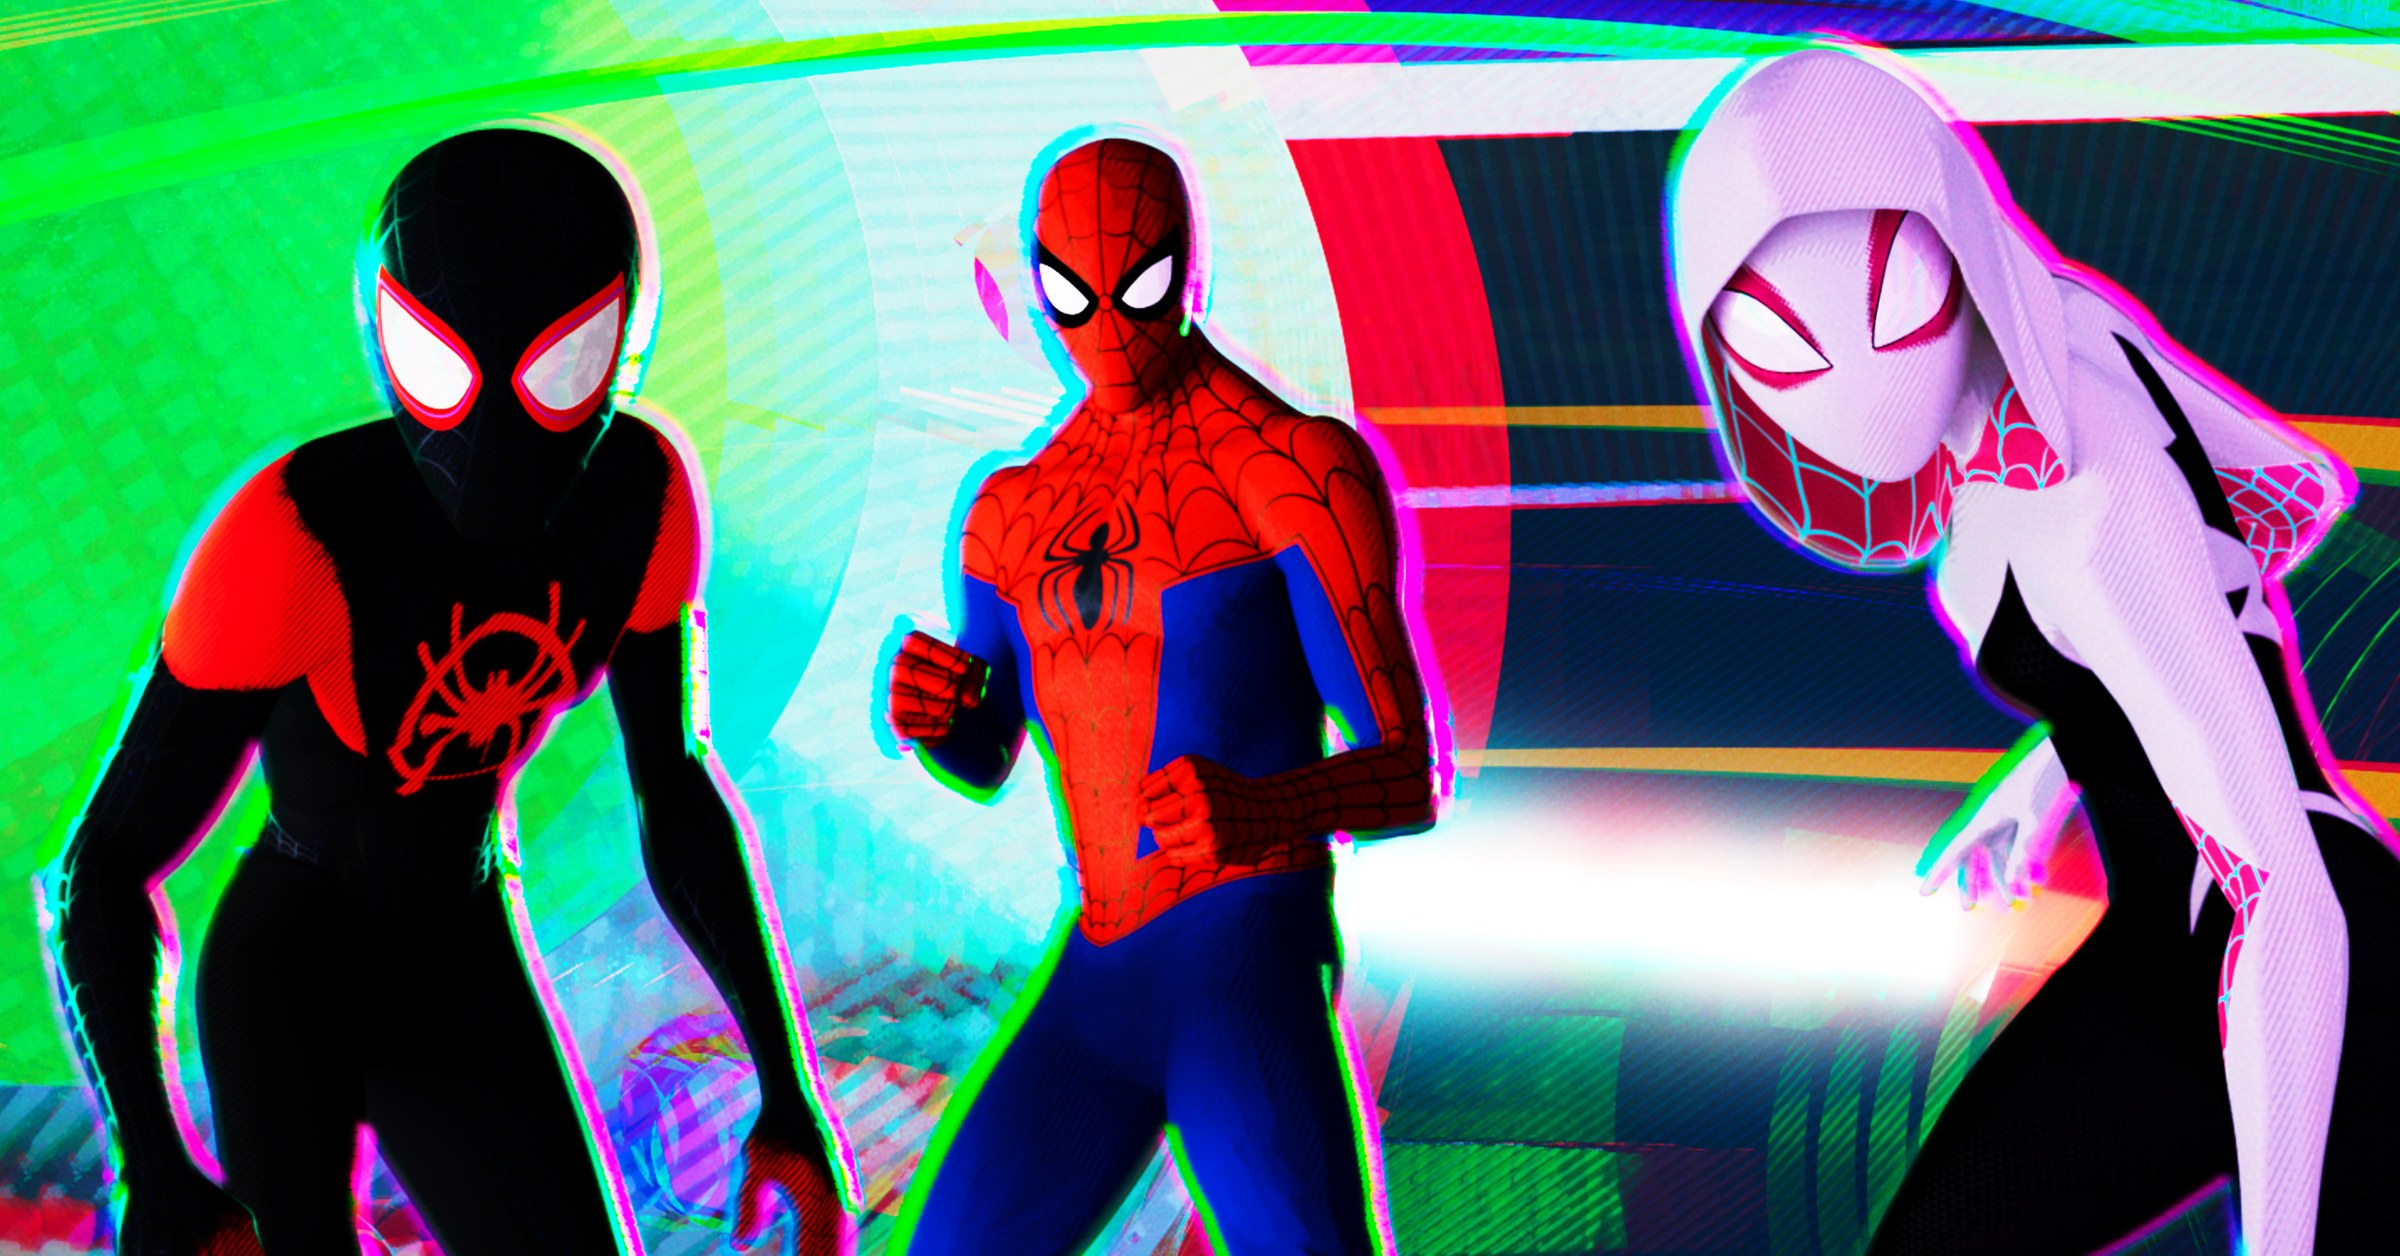 spider-man-into-the-spider-verse-sequel-release-date